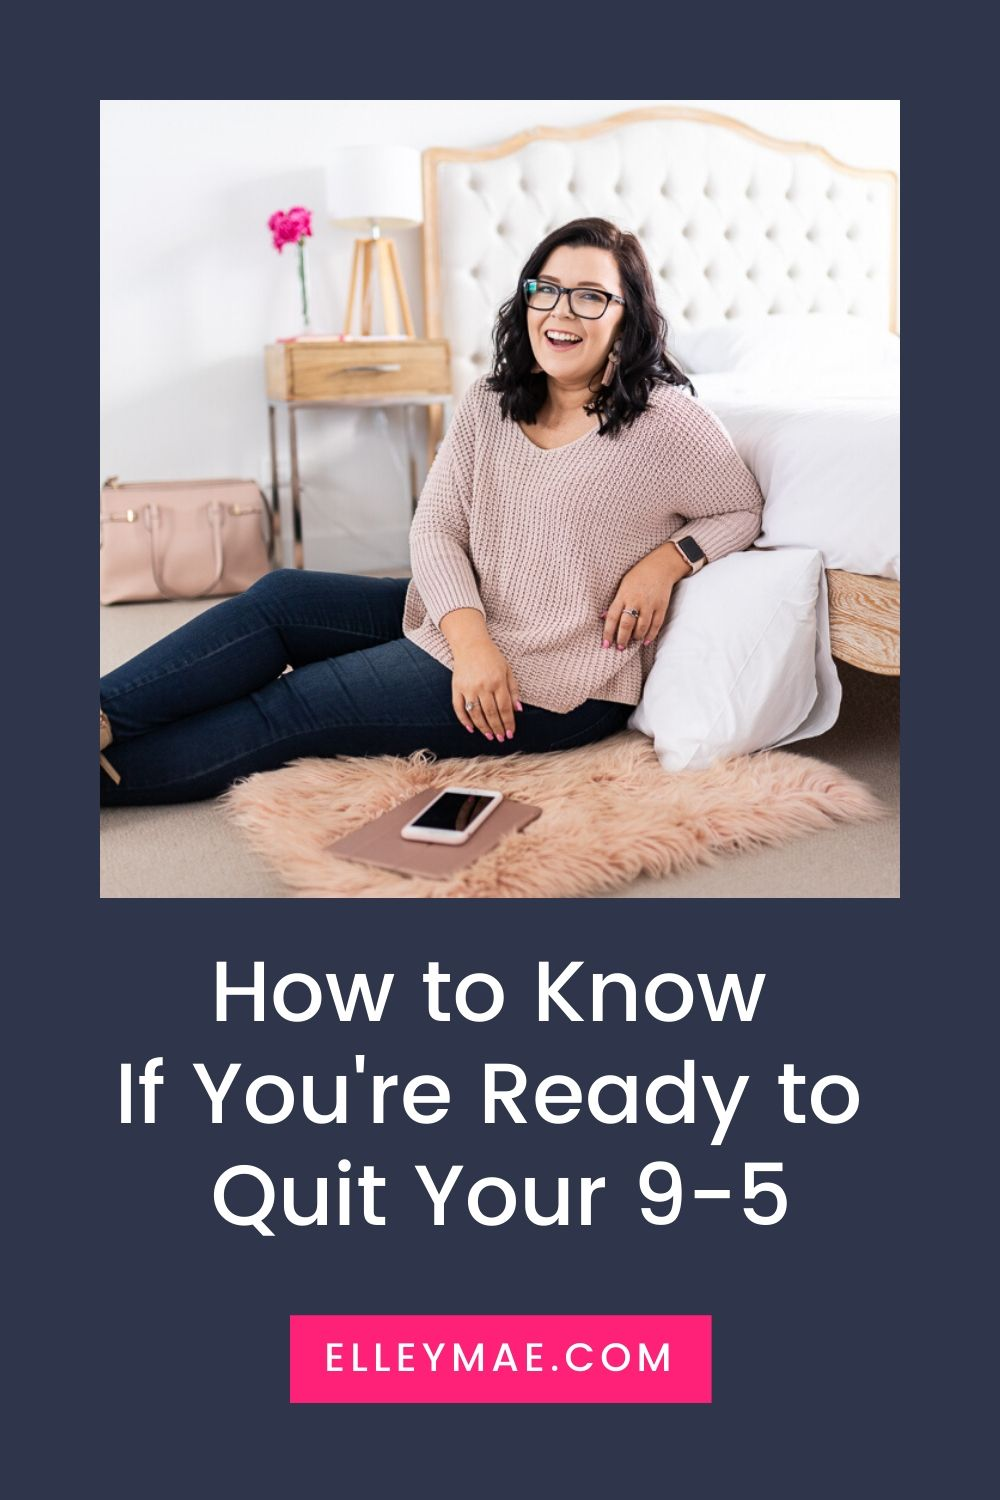 How to Know If You're Ready to Quit Your 9-5